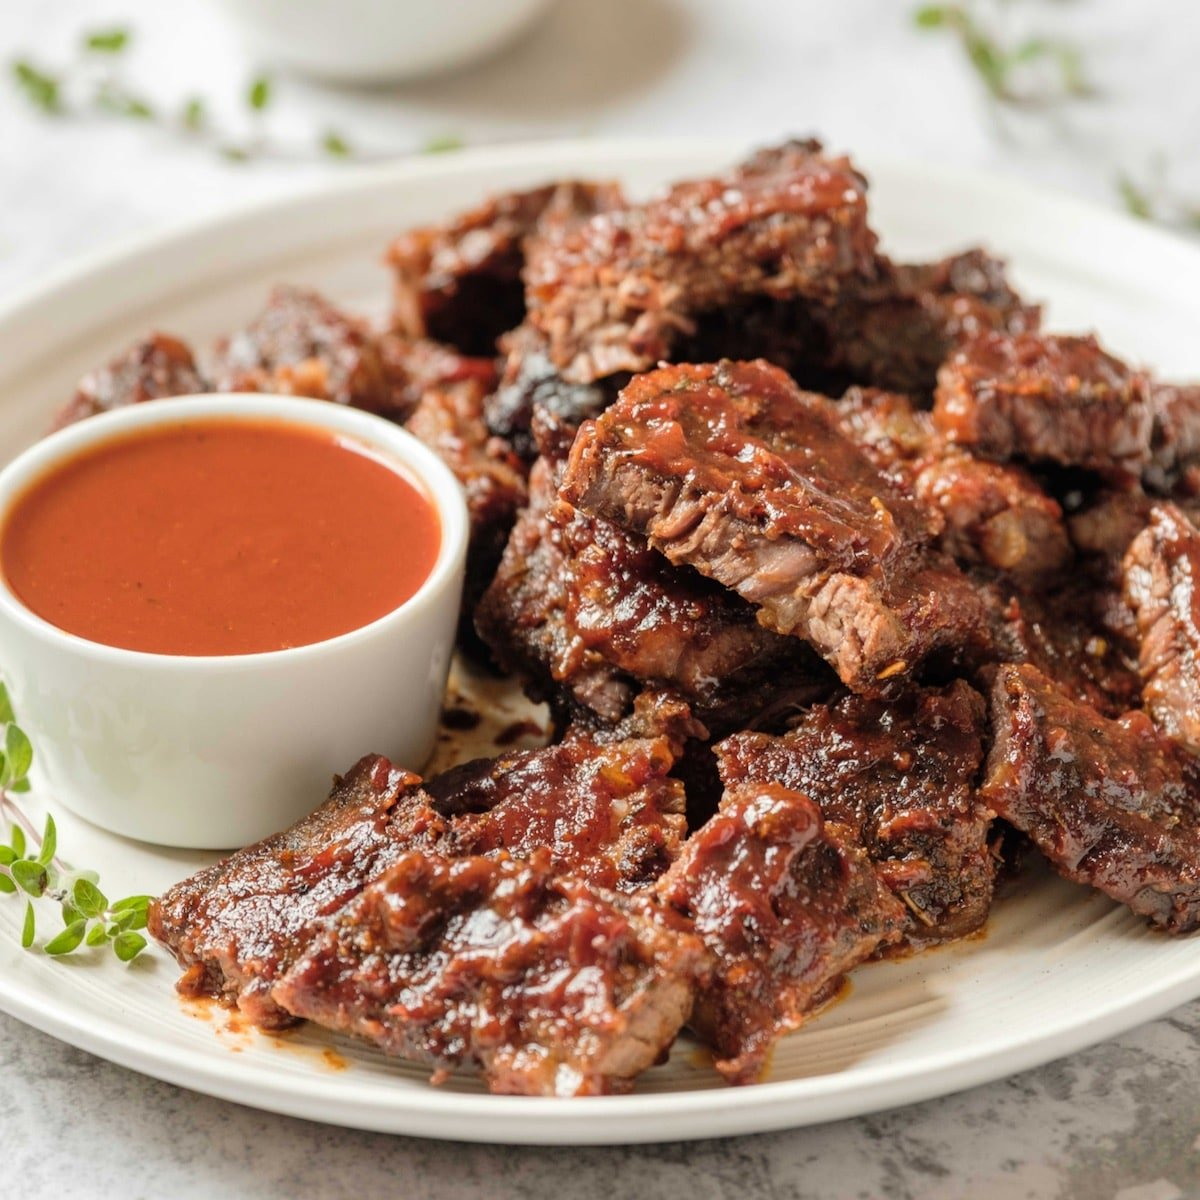 Square Crop- White plate of oven barbecued short ribs with sauce, garnished with fresh thyme, on a marble countertop.